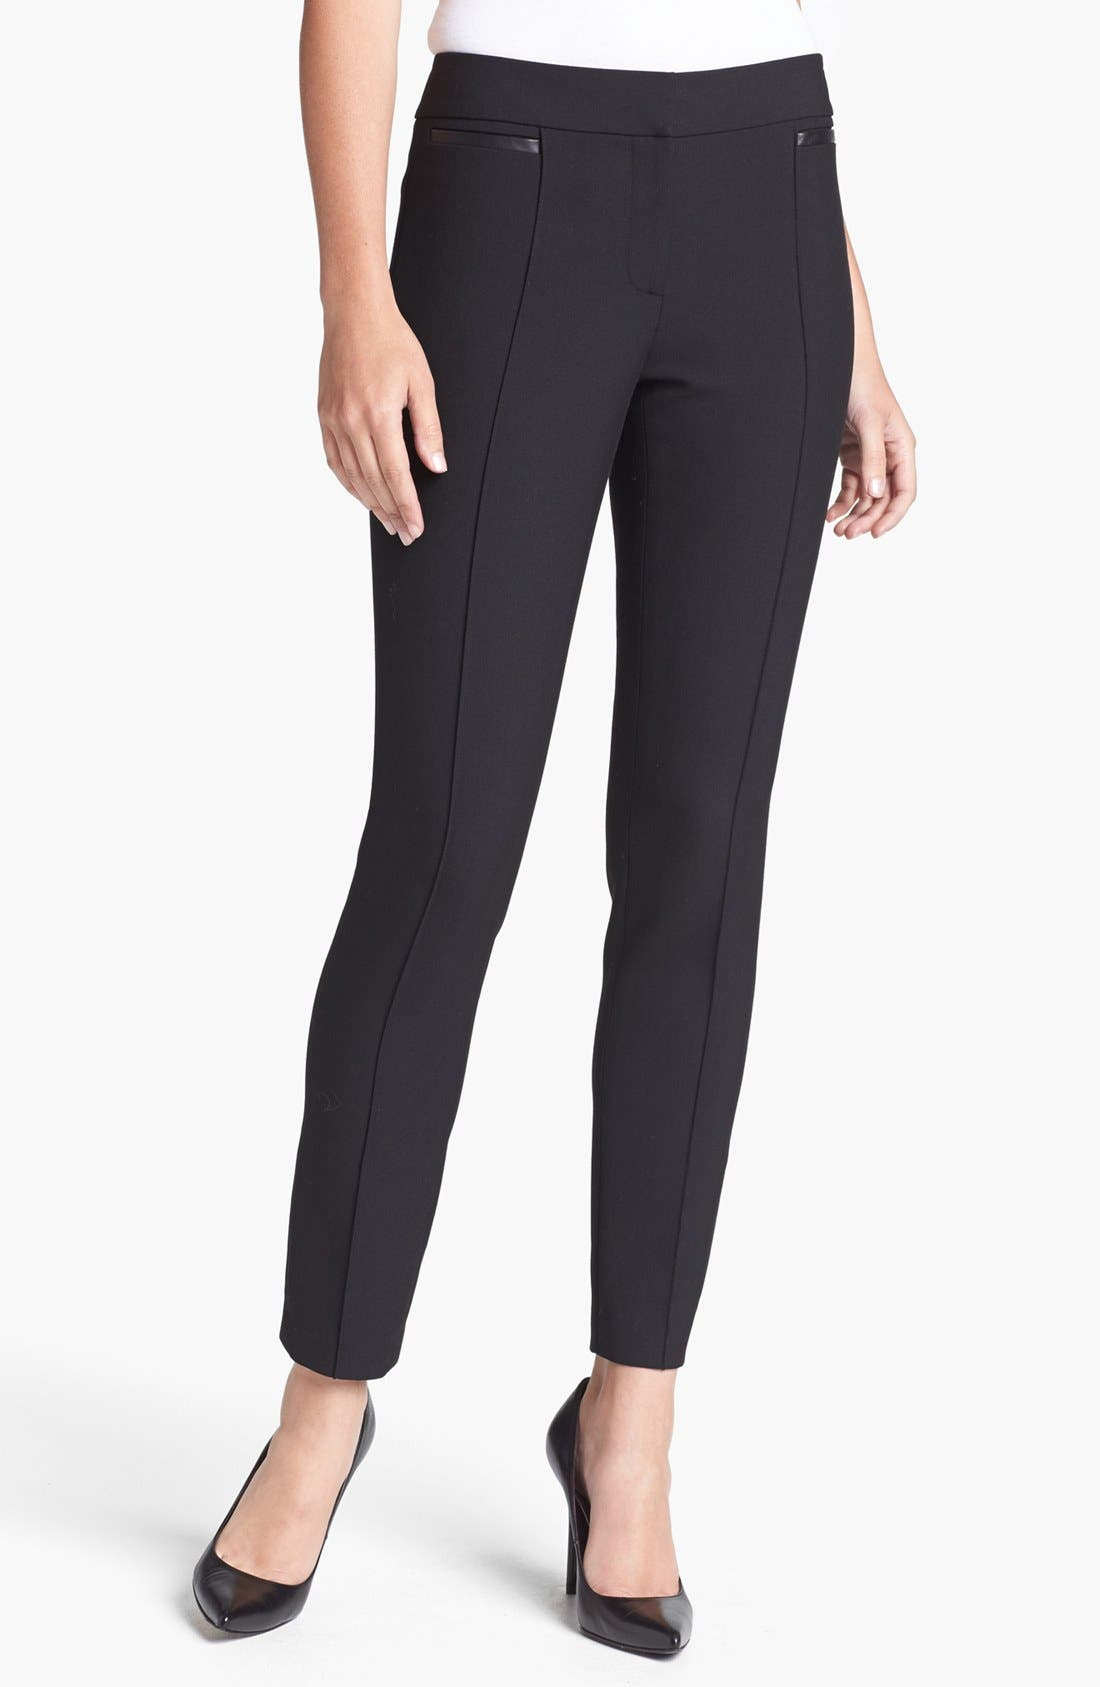 Alternate Image 1 Selected - Classiques Entier® 'City Weave' Skinny Ankle Pants